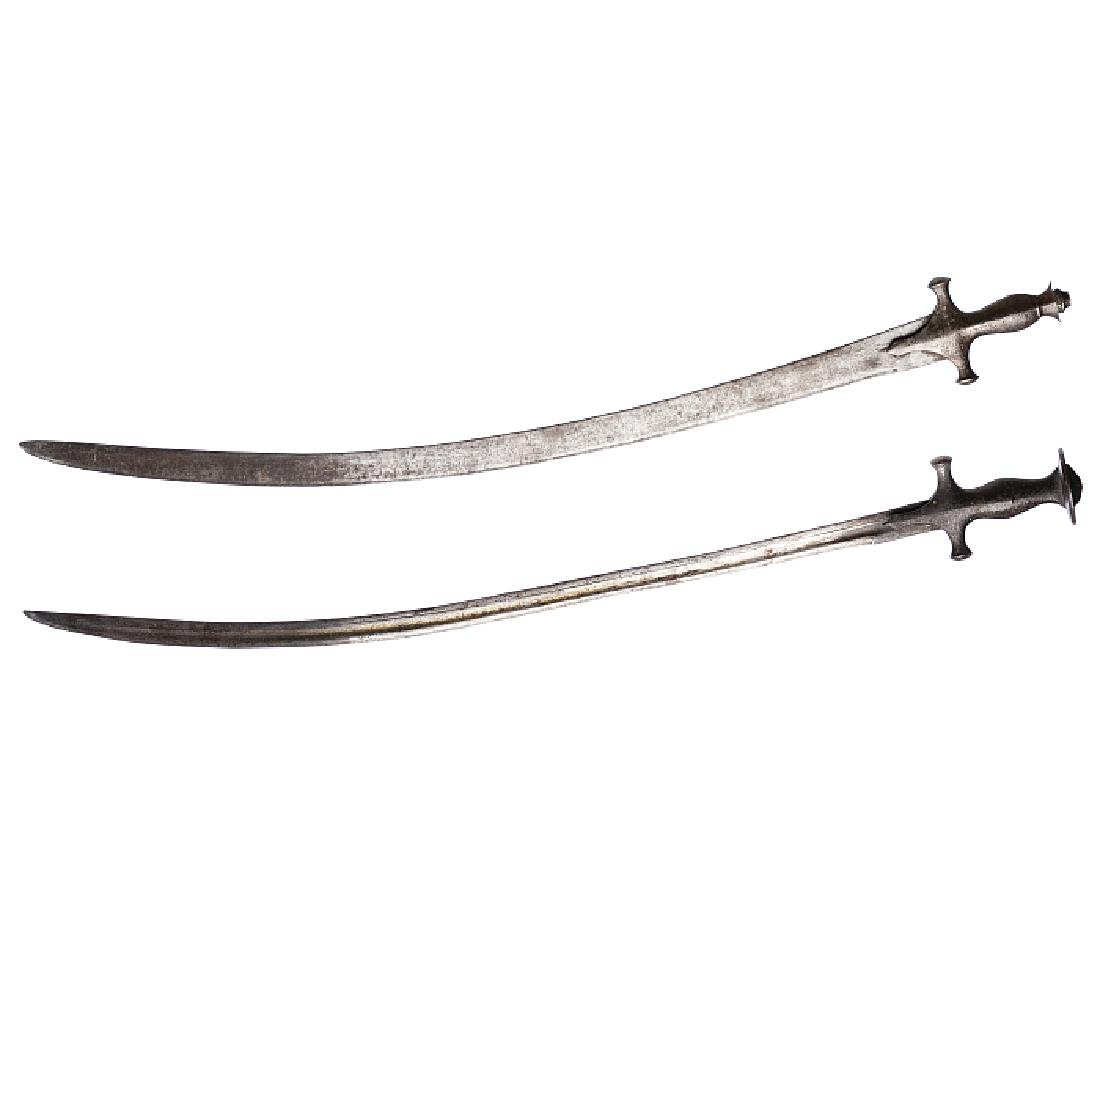 Tulwar - Two Indian swords